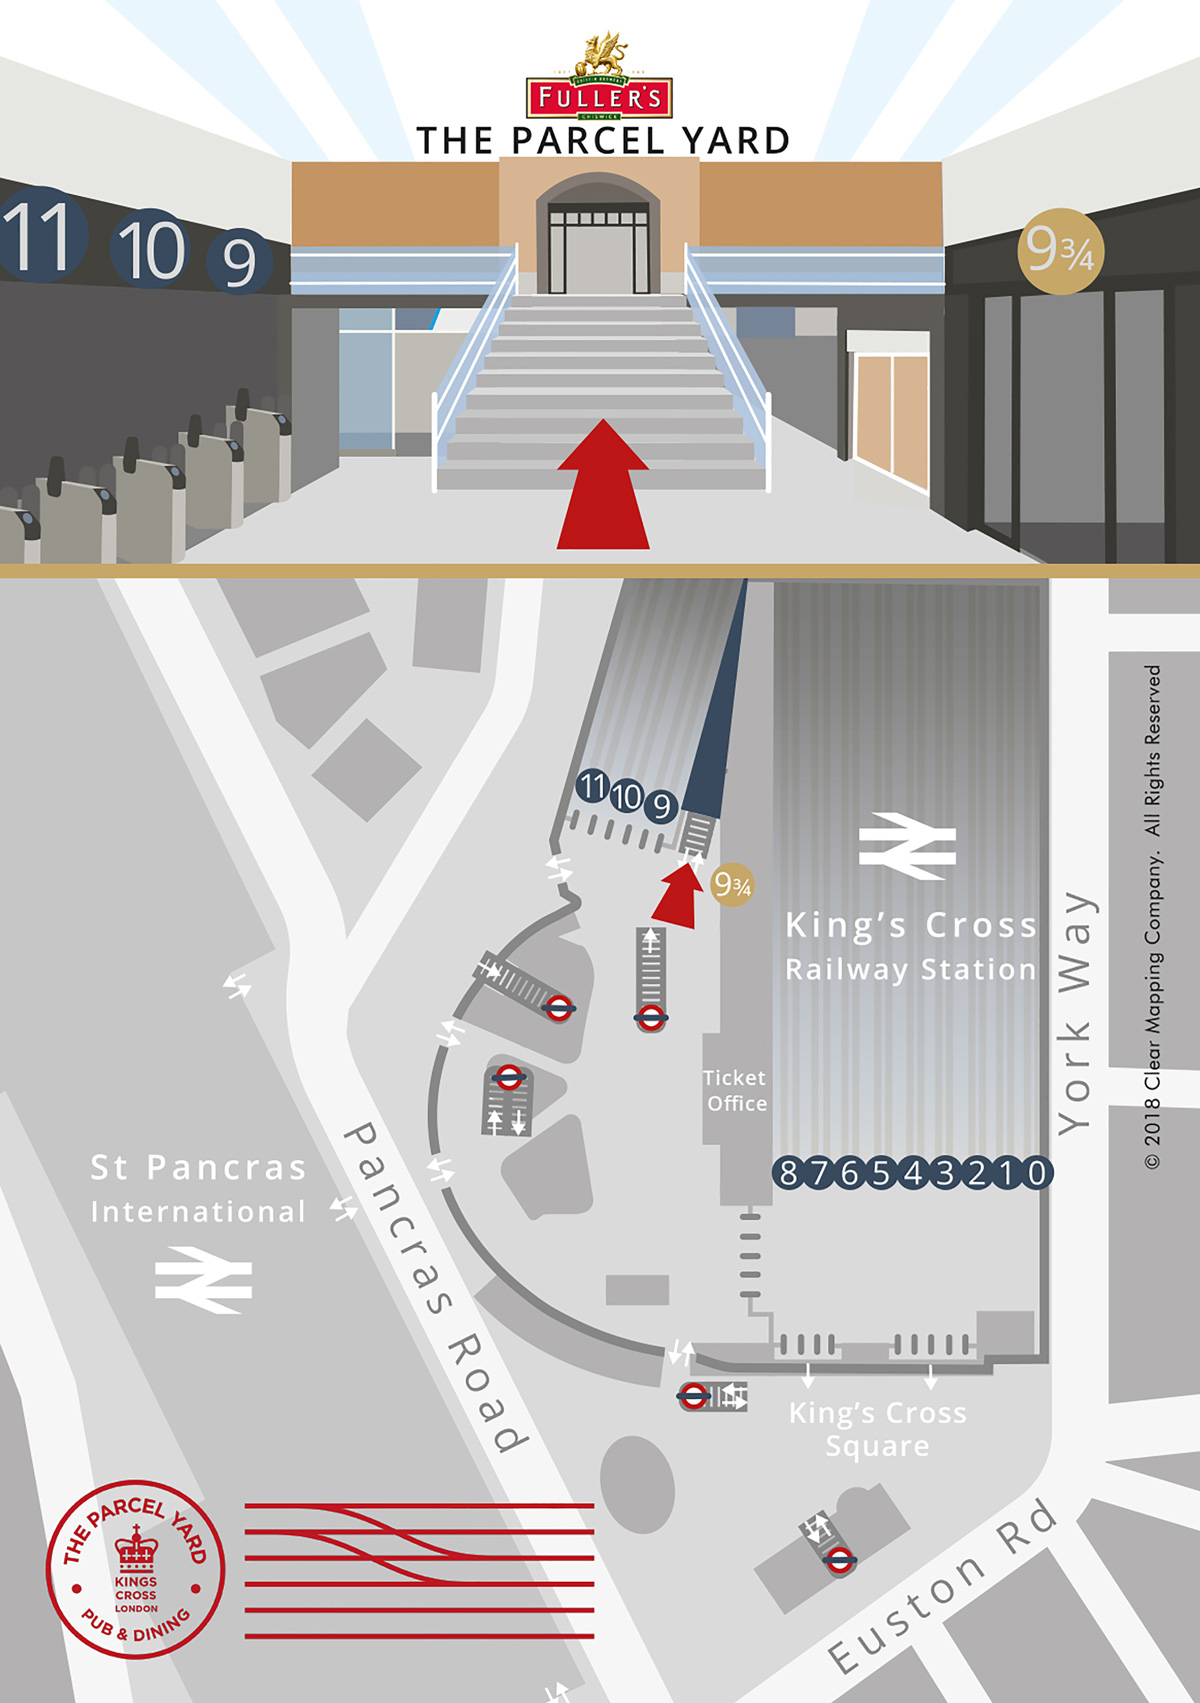 Fullers Brewery Map showing the location of The Parcel Yard pub at Kings Cross station